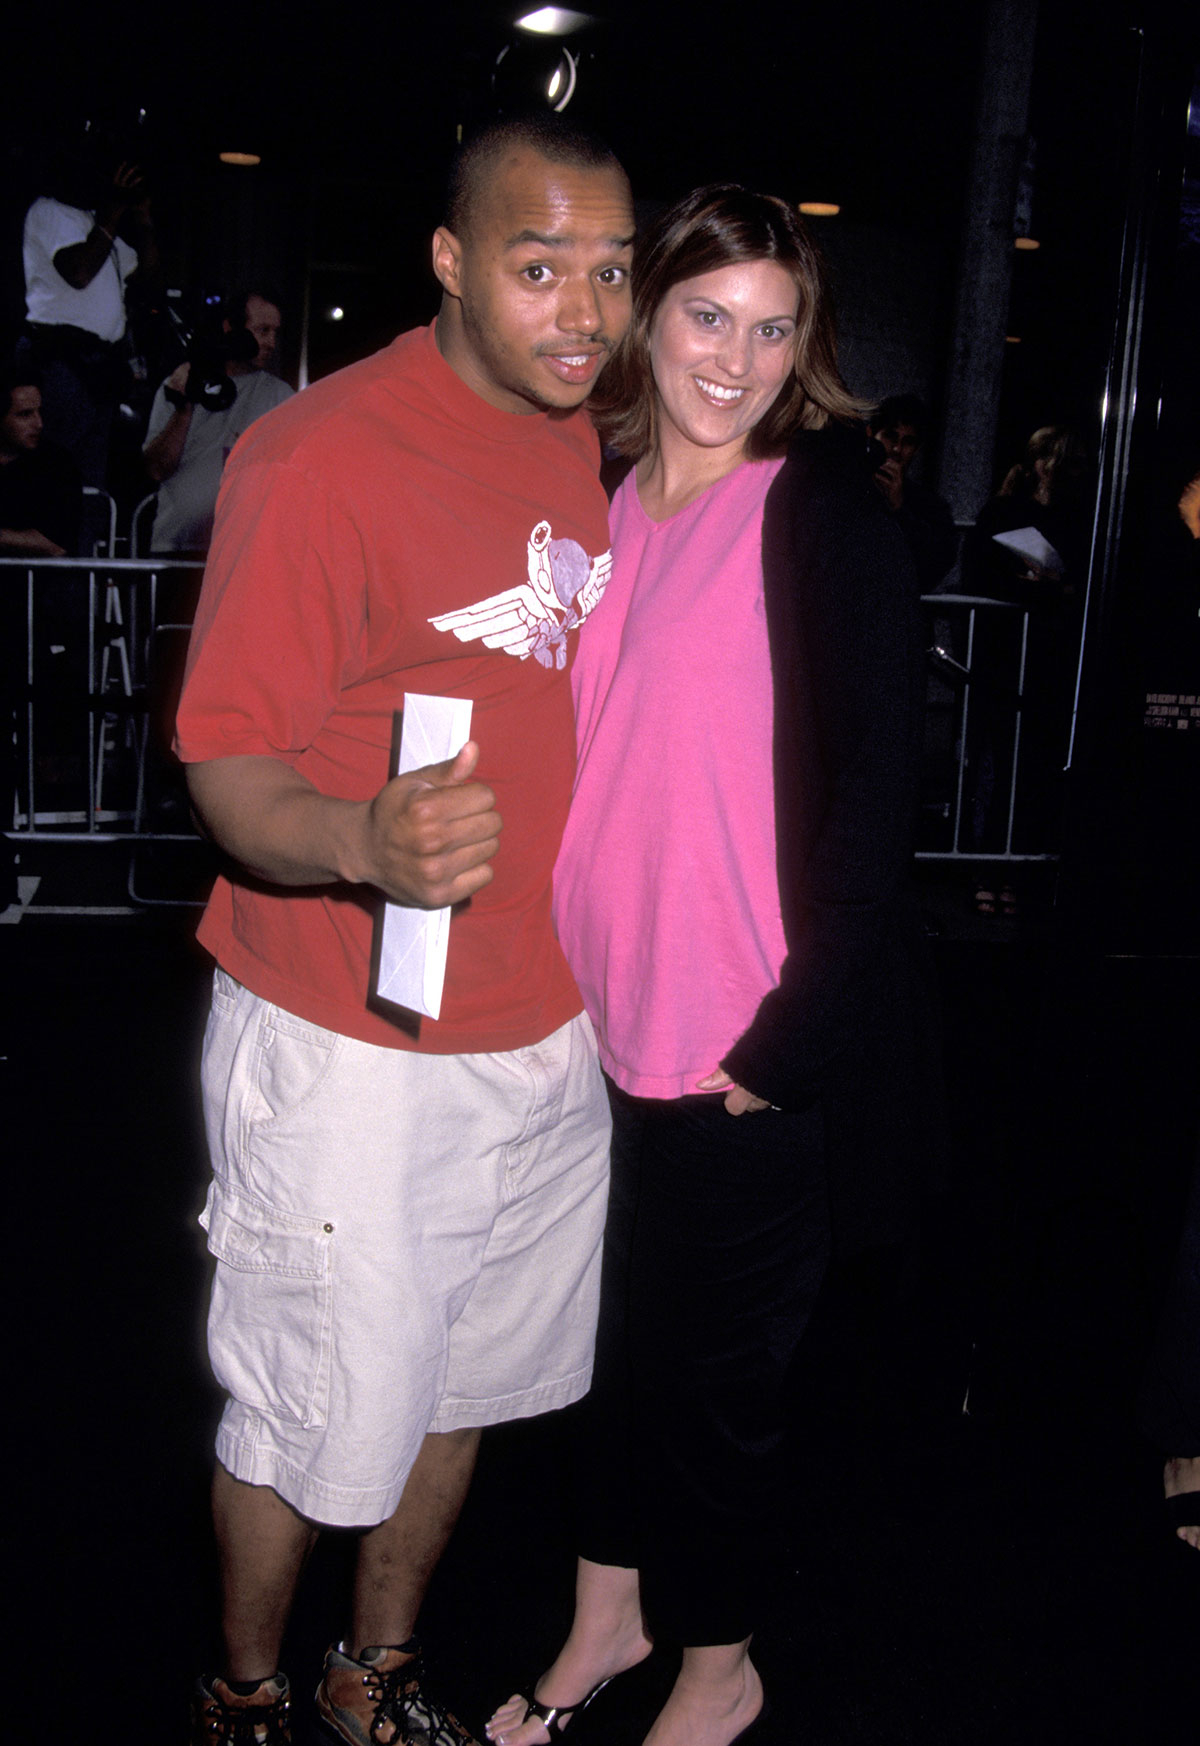 Donald Faison and Lisa Askey during Evolution Premiere at Mann National Theatre in Westwood, California in 2001